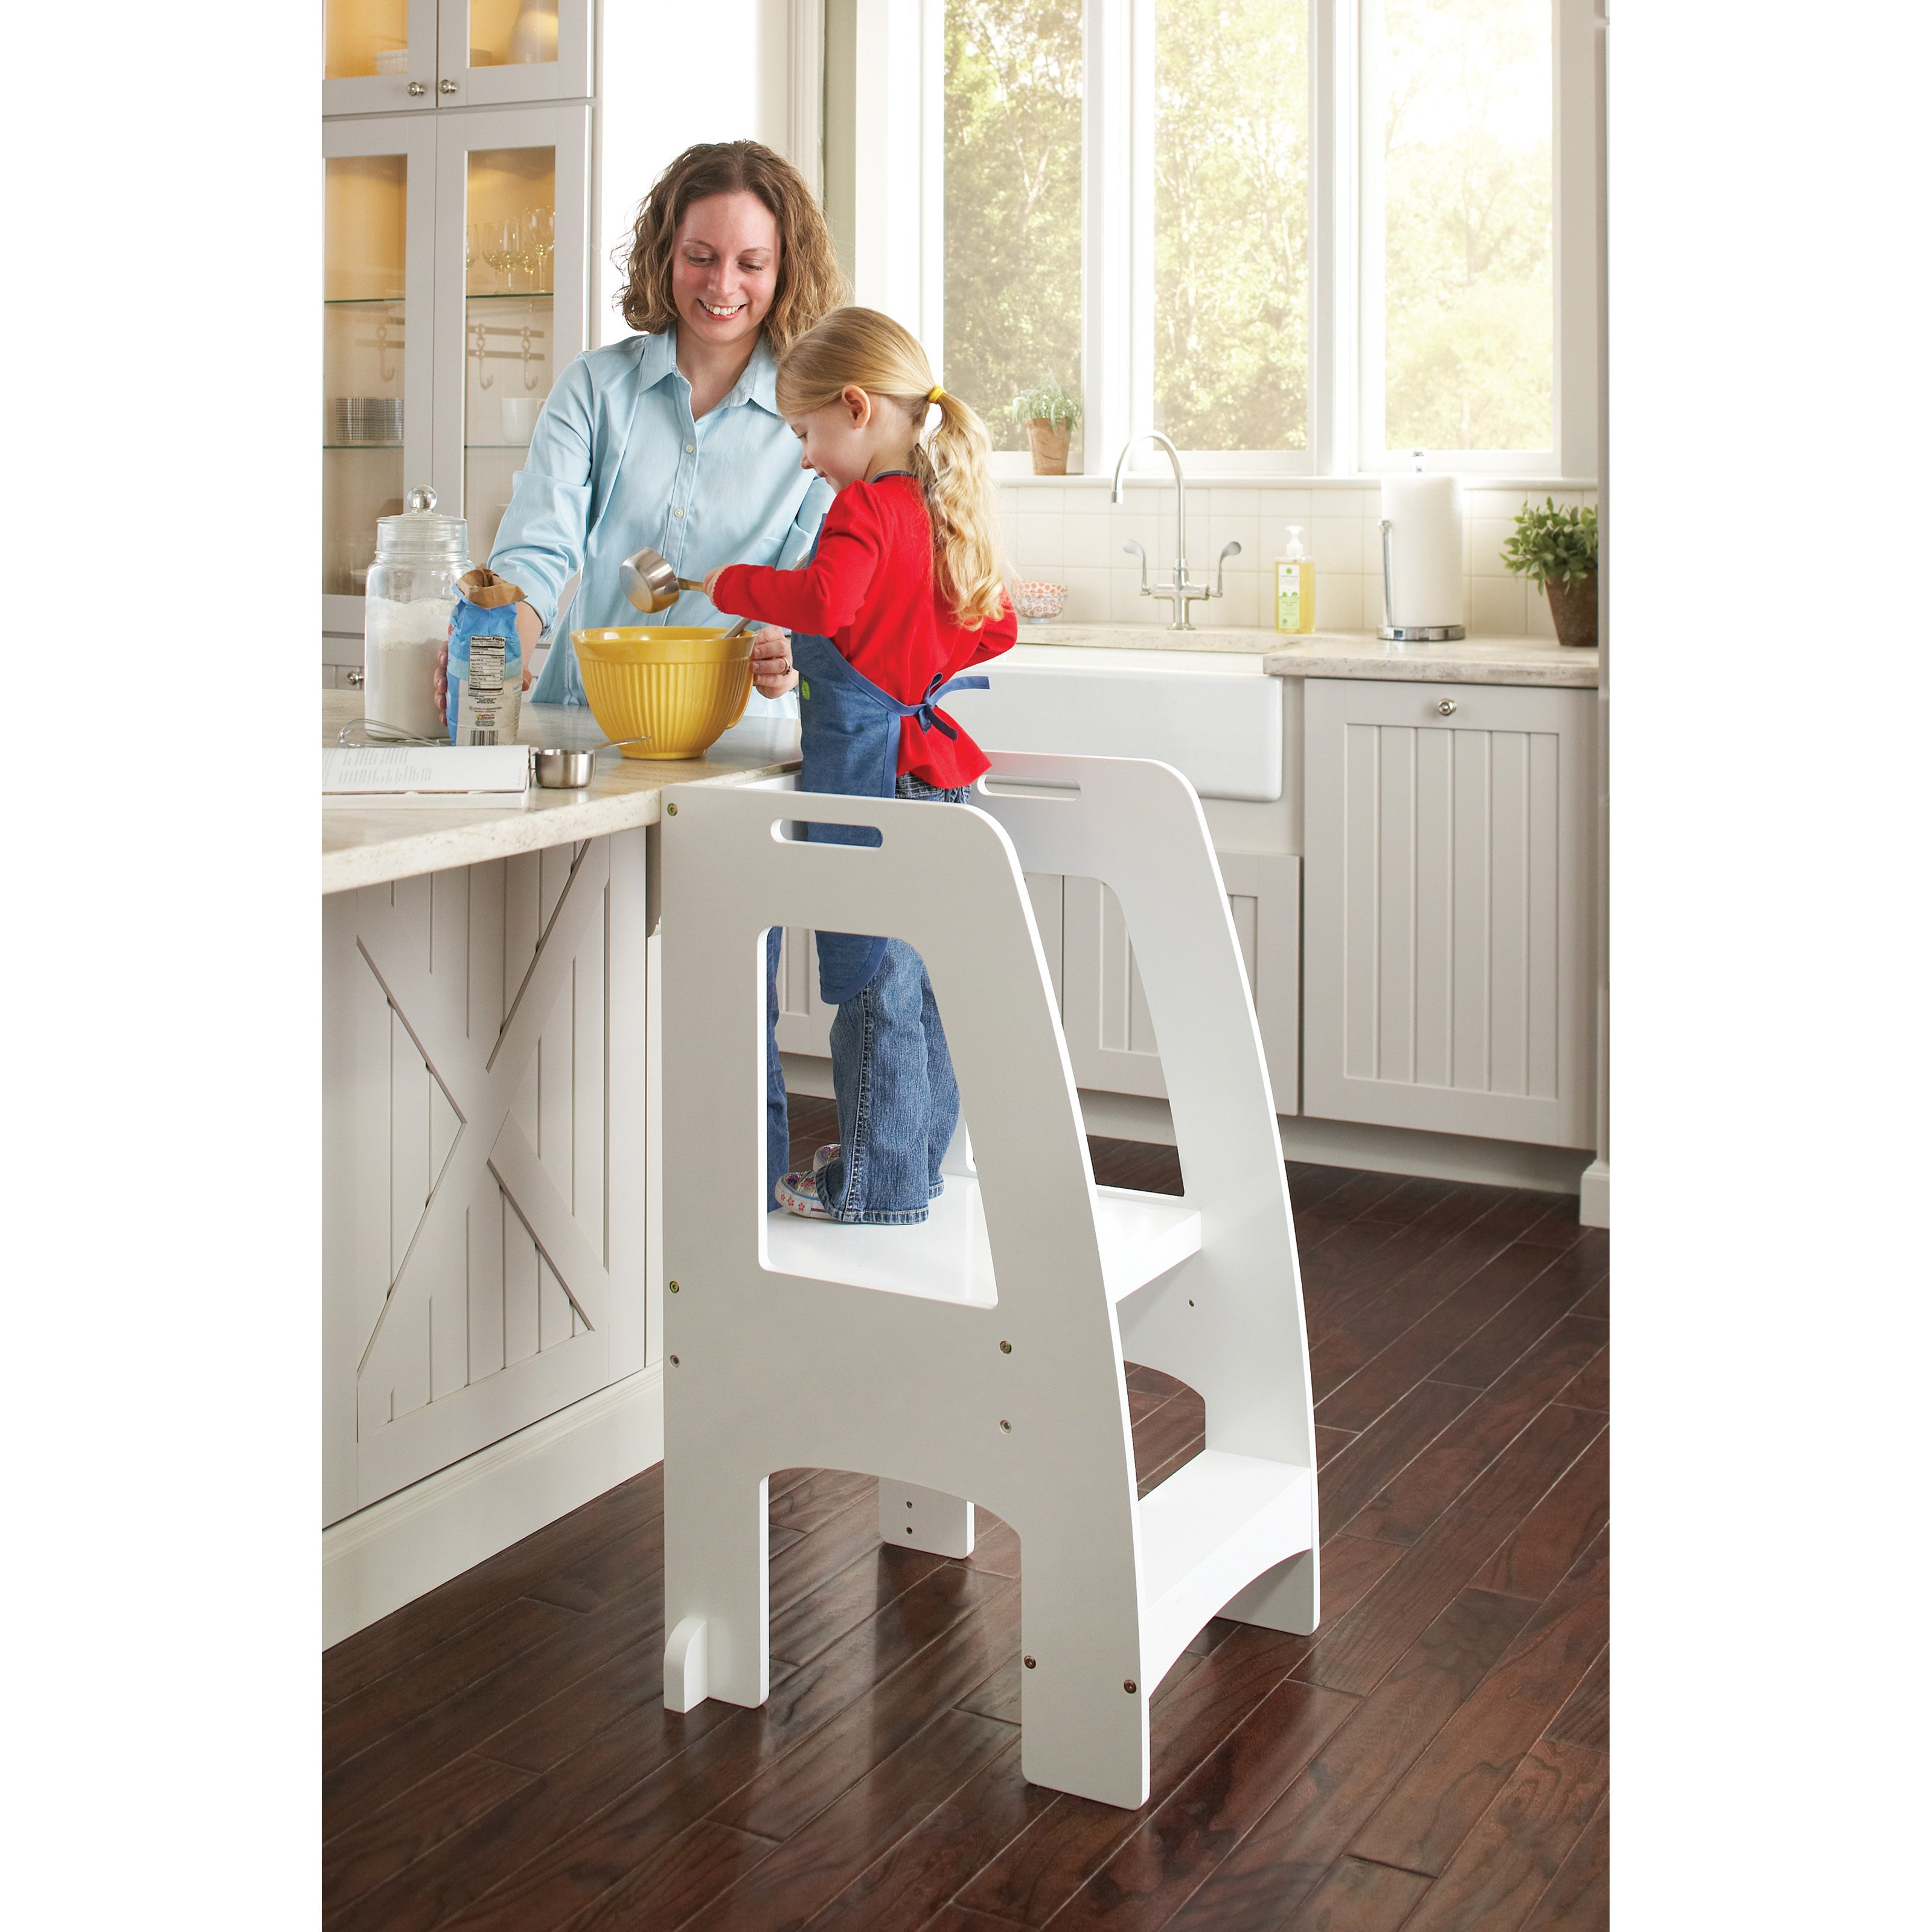 Guidecraft Step Up Kitchen Helper - White